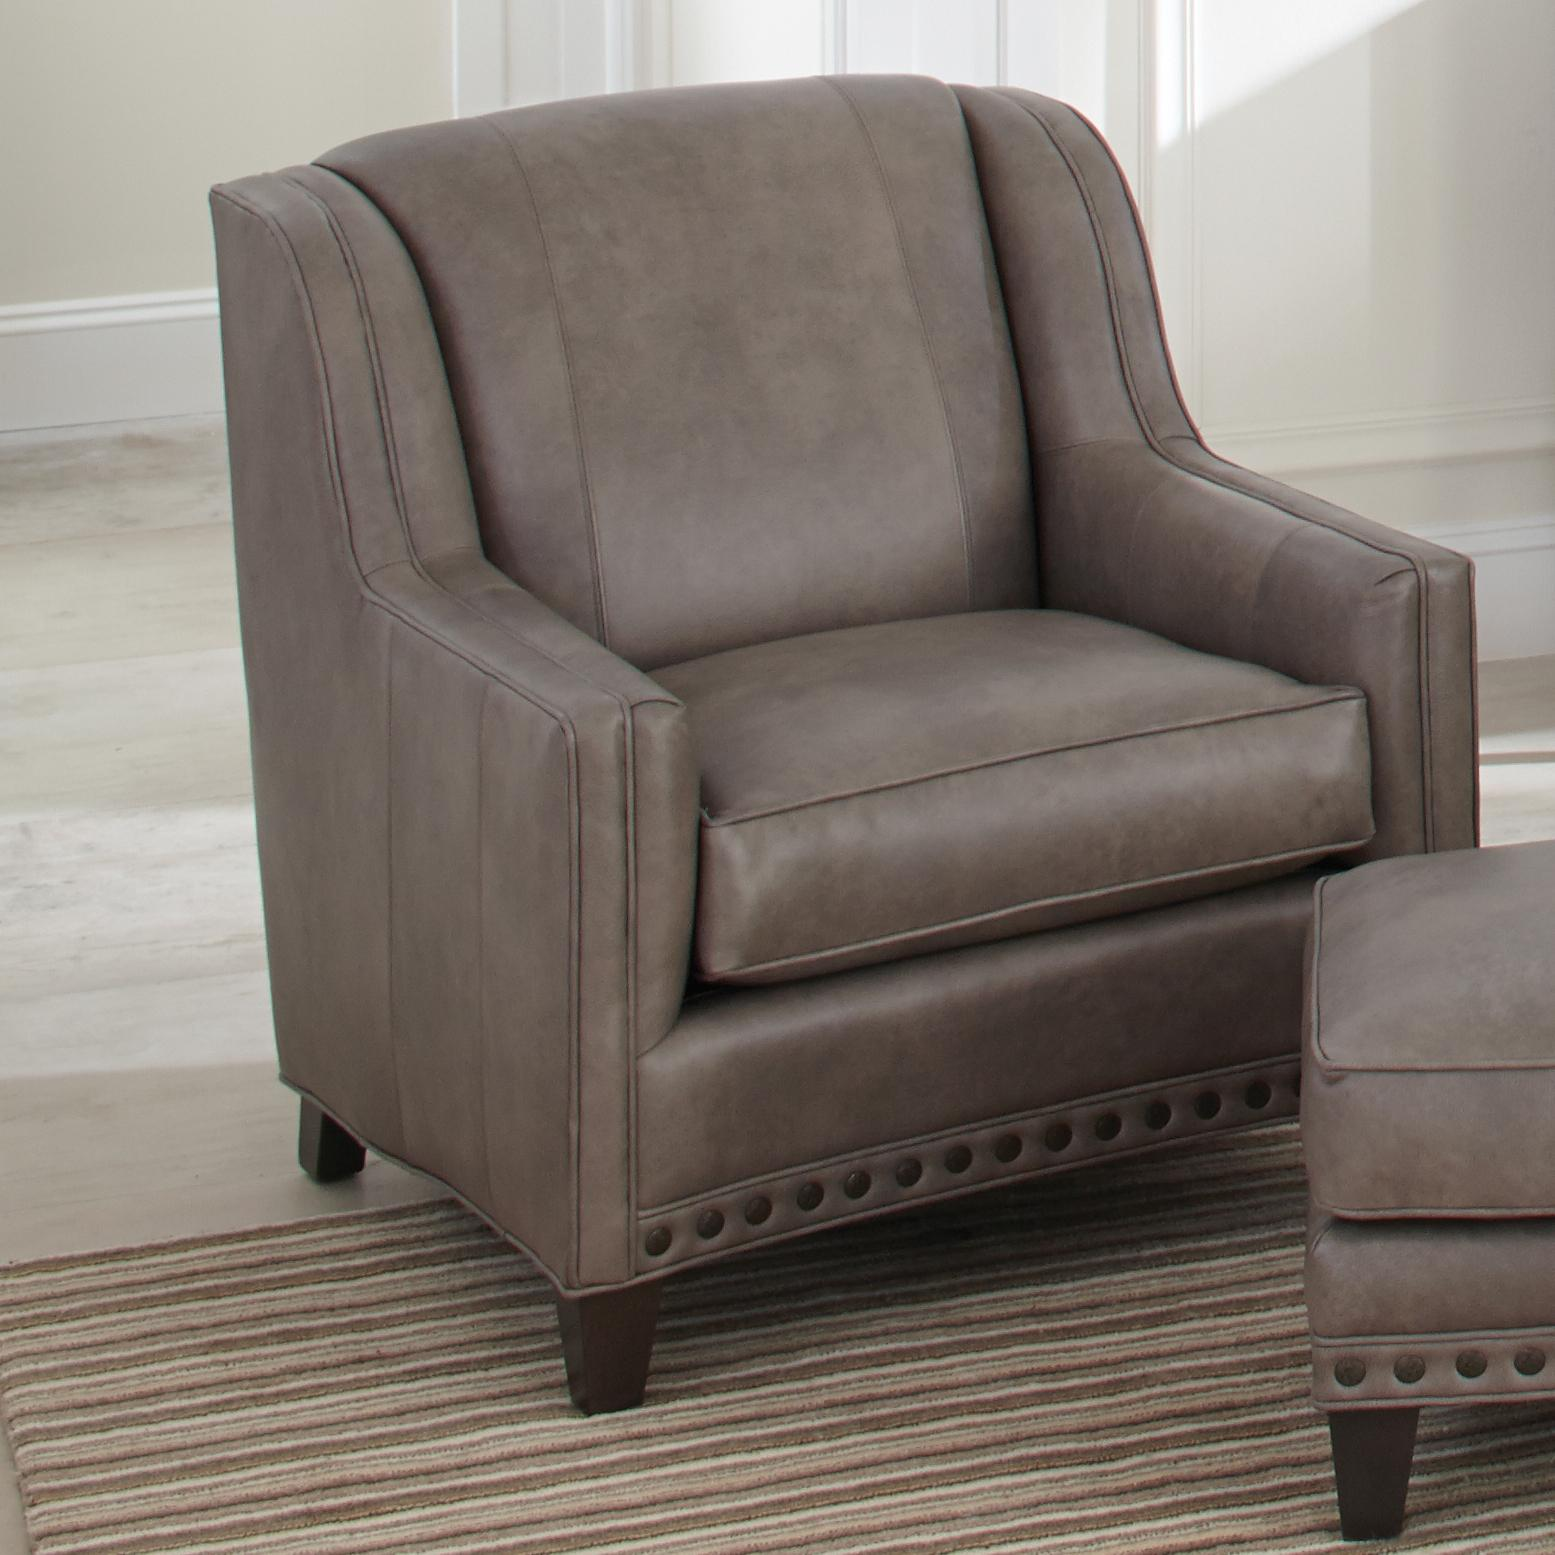 227 Upholstered Chair by Smith Brothers at Mueller Furniture